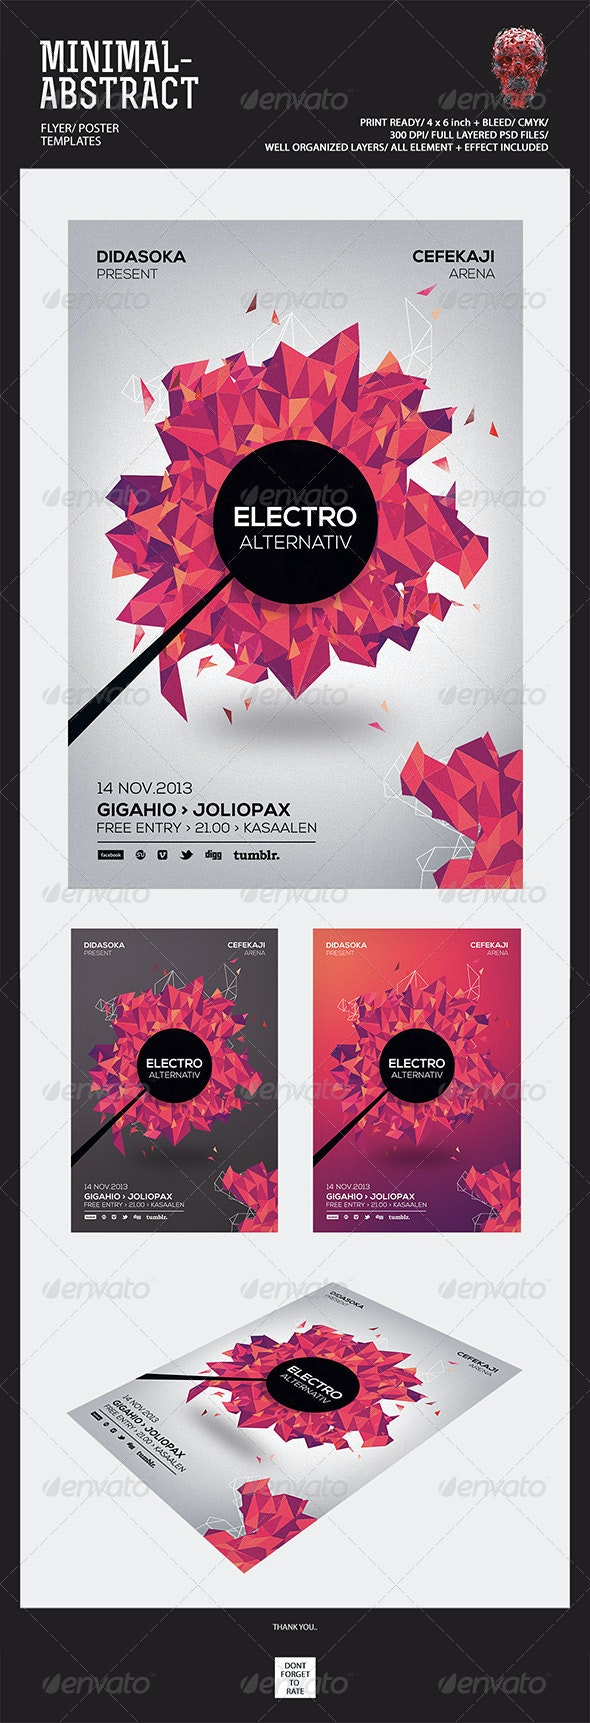 Minimal Abstract Flyer Templates - Events Flyers